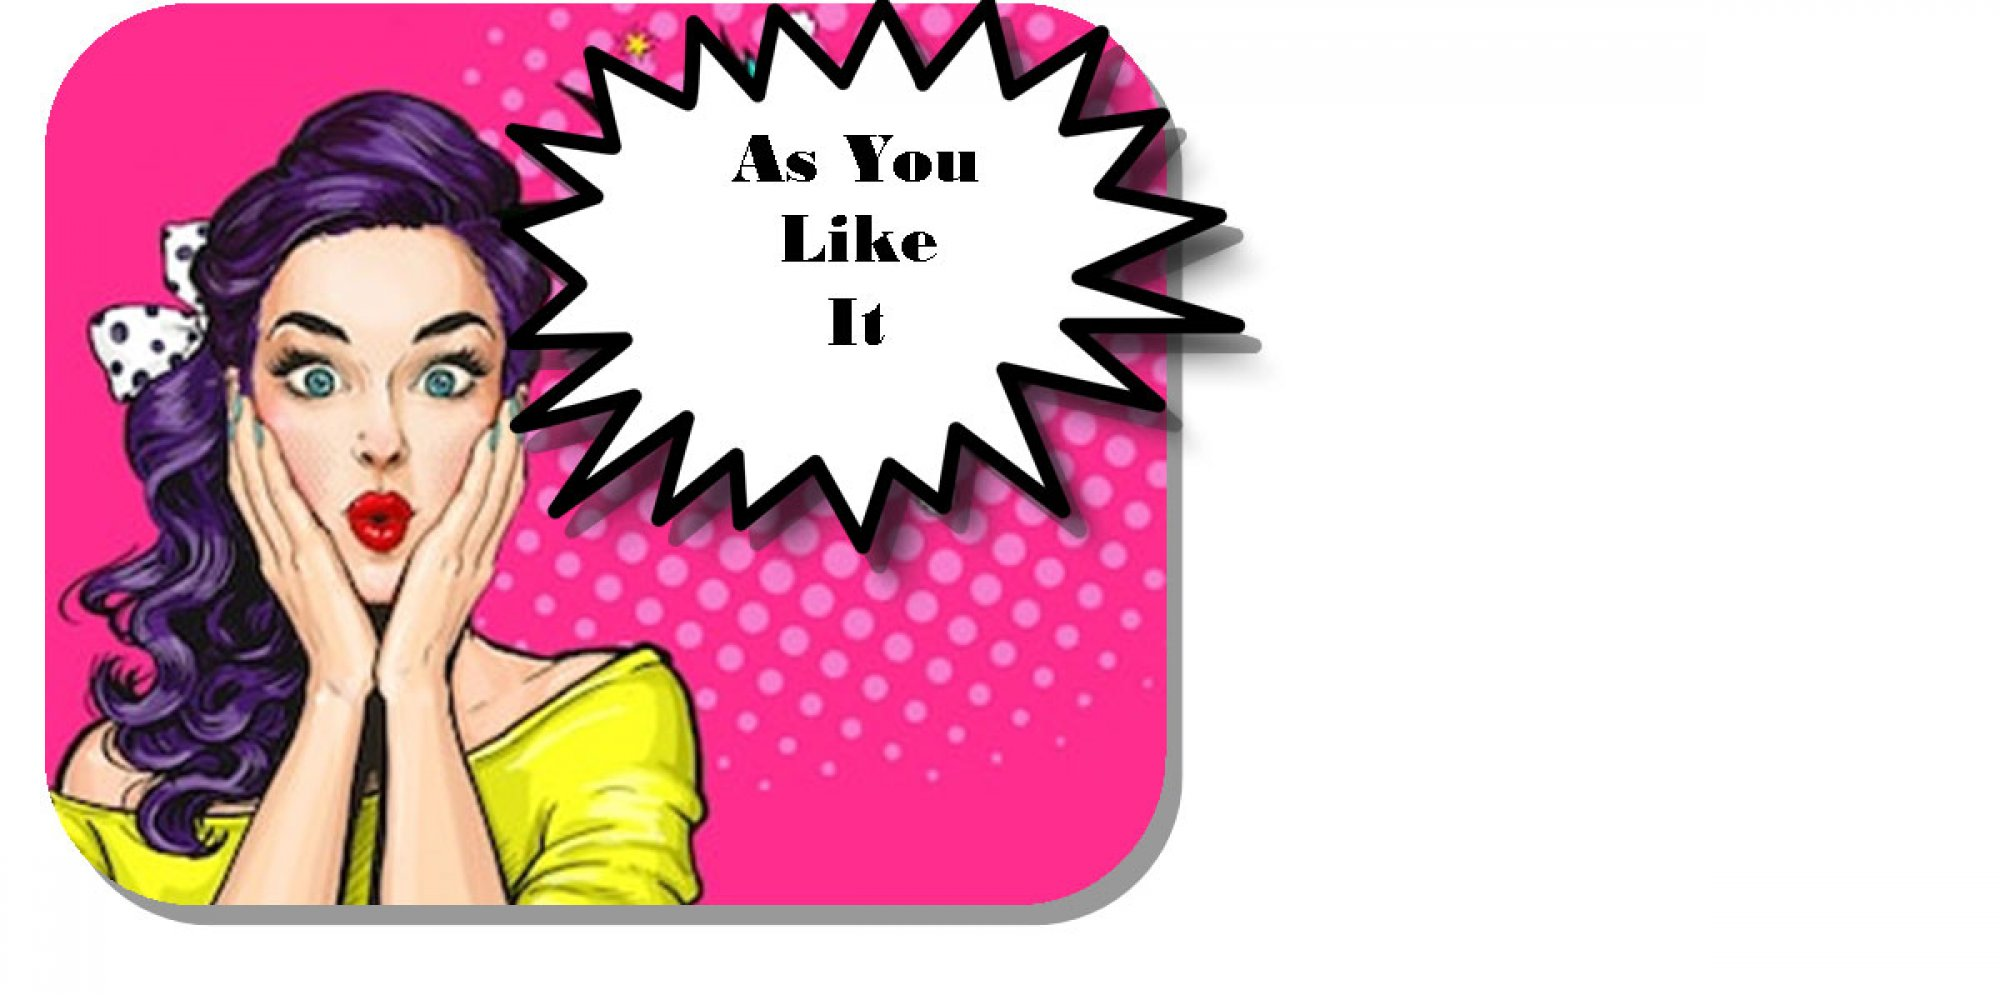 As You Like It: a pop-art style illustration of a woman clasping her hands to her face in astonishment with a speech bubble reading As You Like It